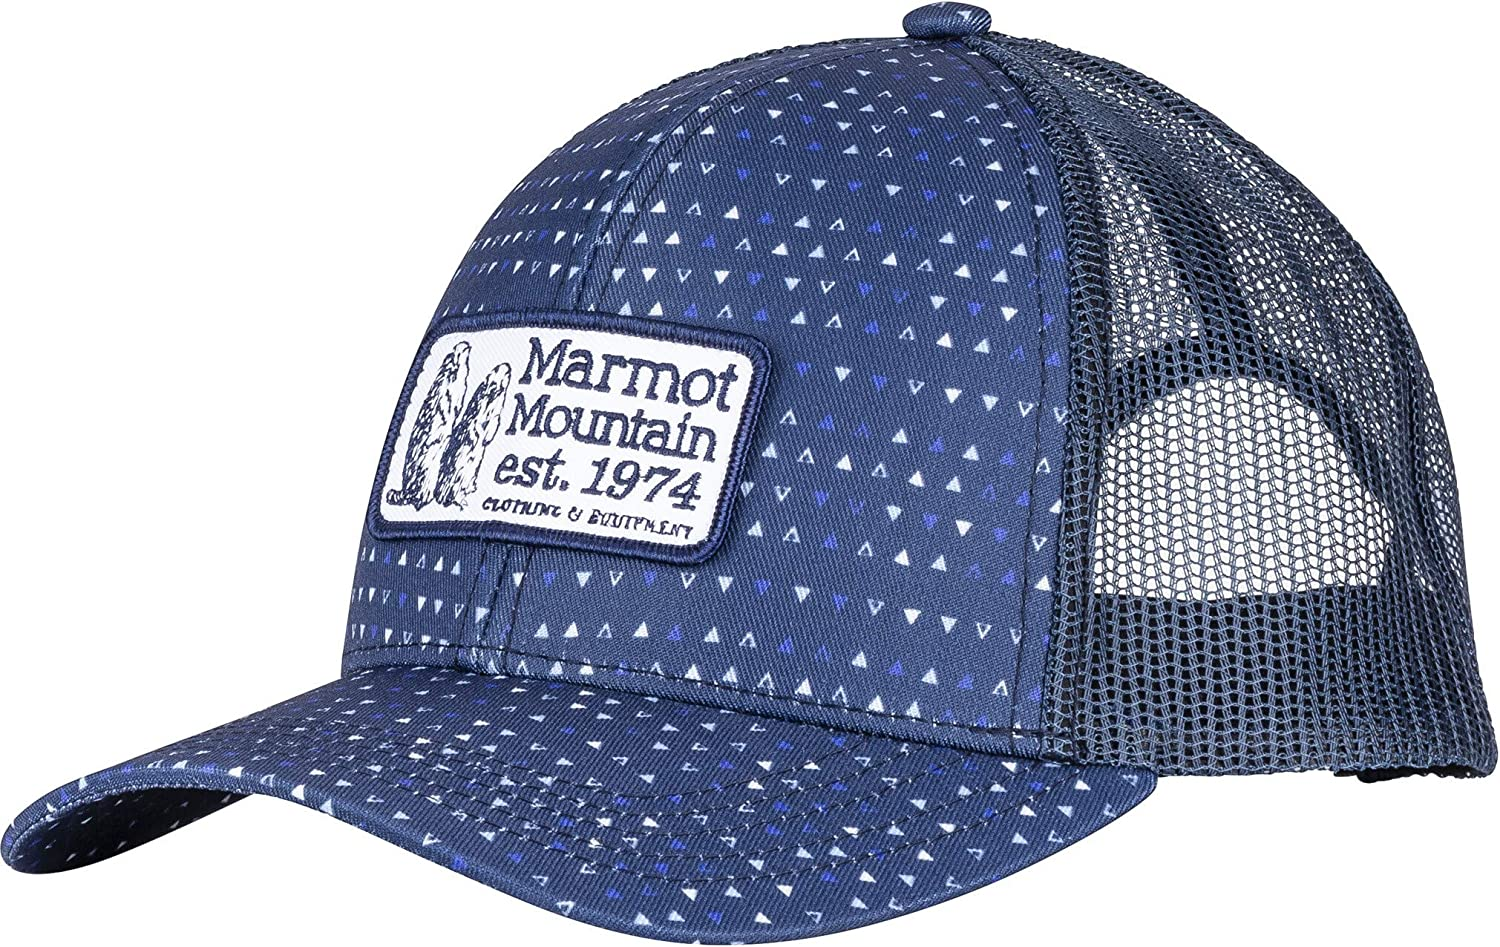 Marmot Angles Trucker Hat Mens One Size 13470-2975-ONE Arctic Navy